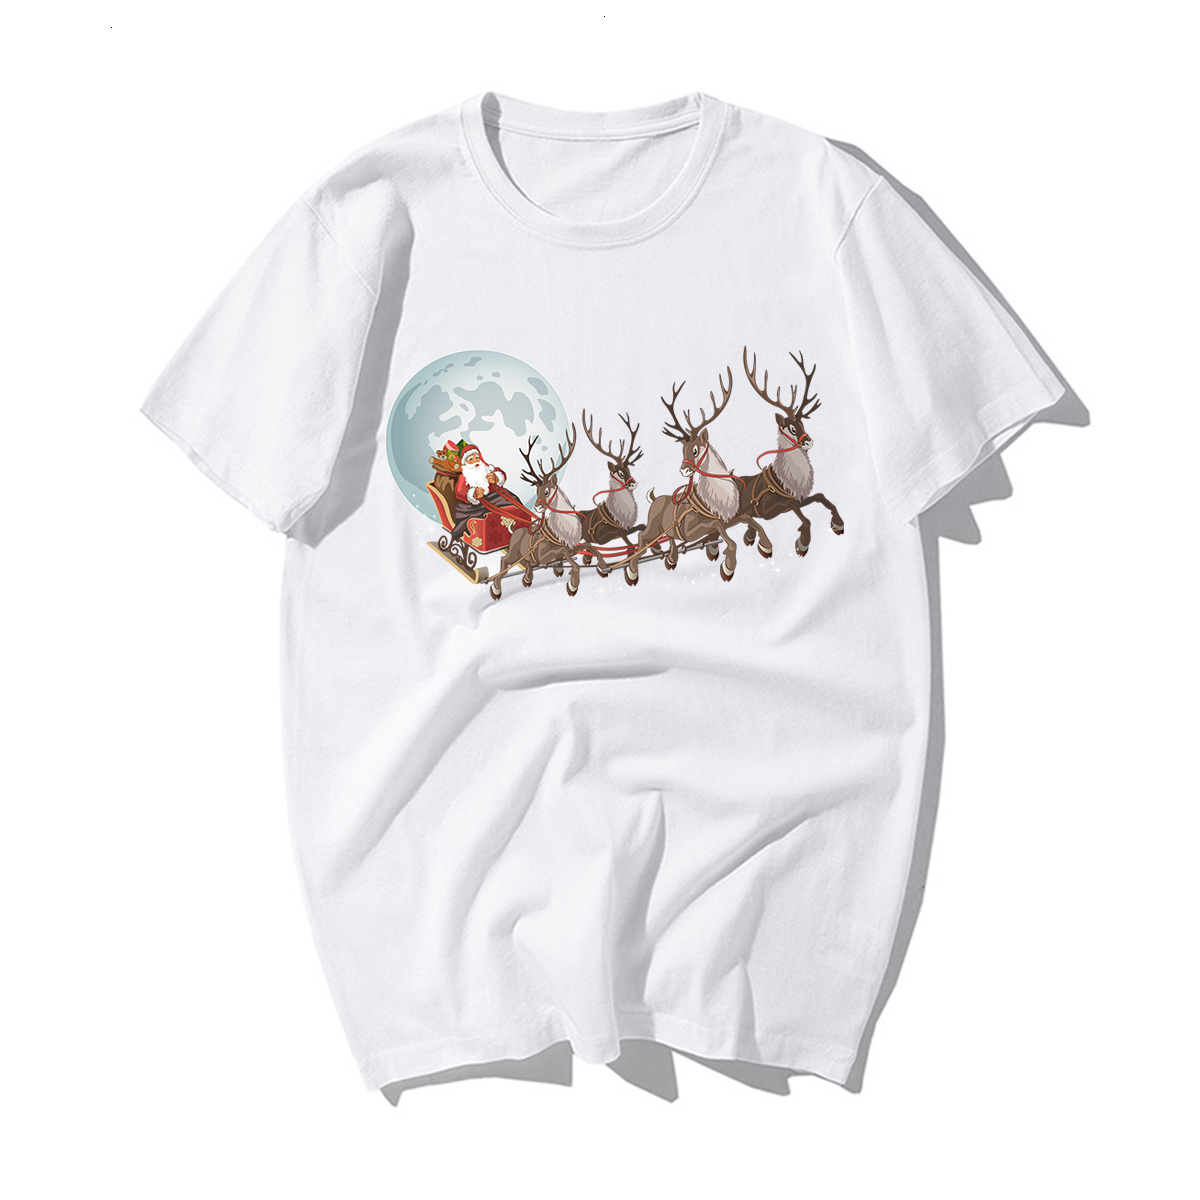 Funny Santa Claus Reindeer Lover CHRISTMAS GIFT T-SHIRT Happy New Year T Shirt Man Tshirt Merry CHRISTMAS Casual Cotton Kawaii 1